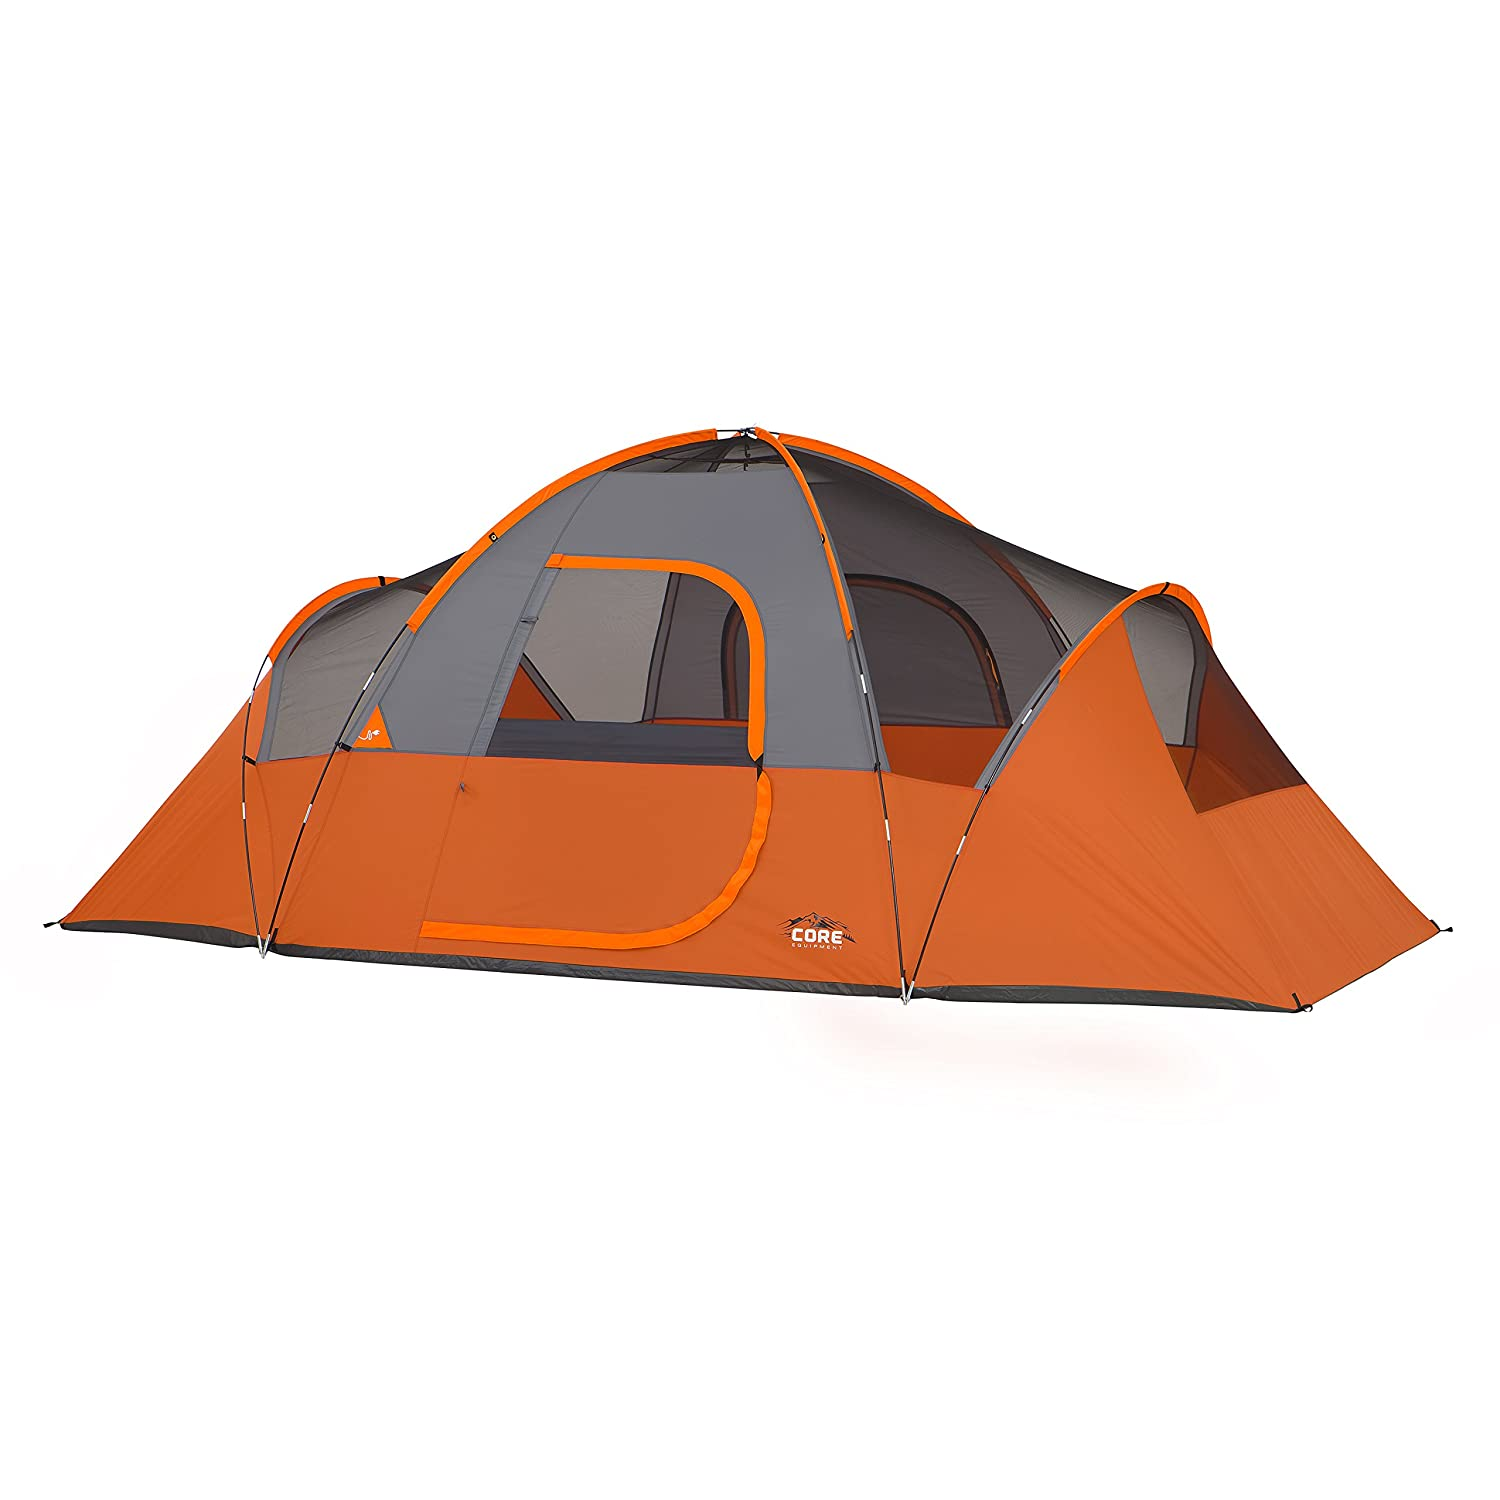 Amazon.com  CORE 9 Person Extended Dome Tent - 16u0027 x 9u0027  Sports u0026 Outdoors  sc 1 st  Amazon.com & Amazon.com : CORE 9 Person Extended Dome Tent - 16u0027 x 9u0027 : Sports ...